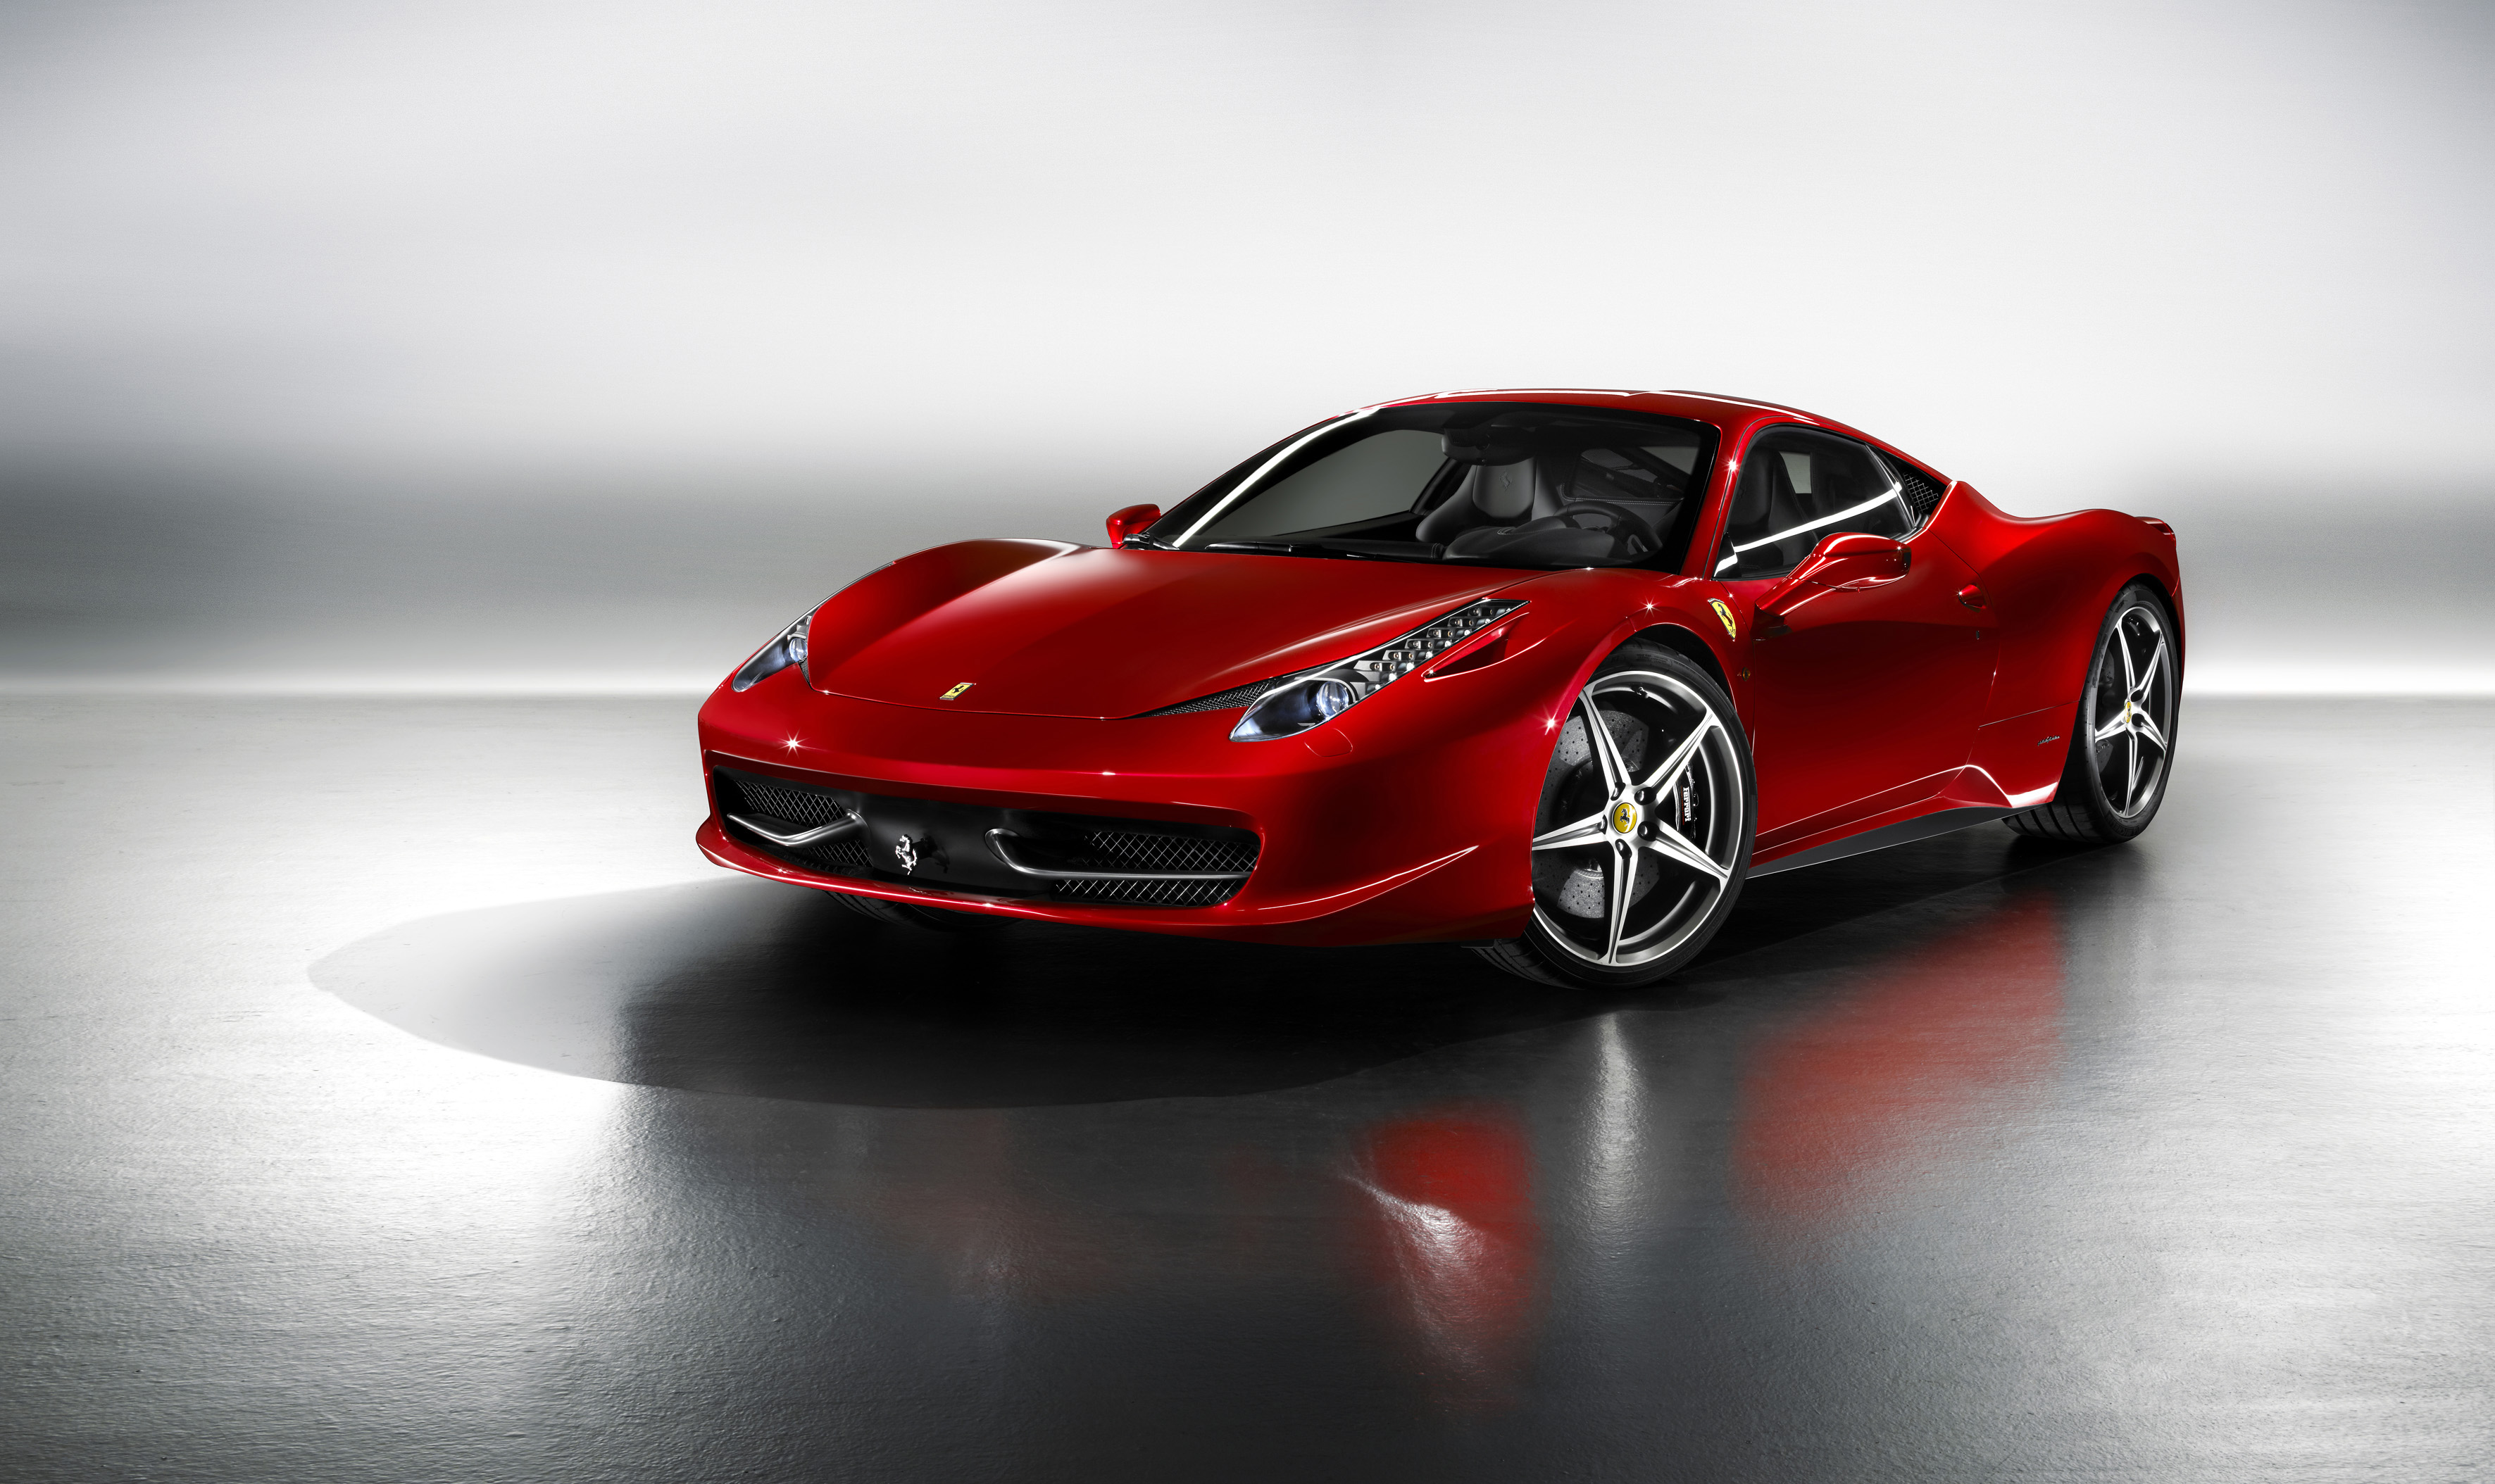 Ferrari, Maserati Vroom Into Philippine Luxury Car Market